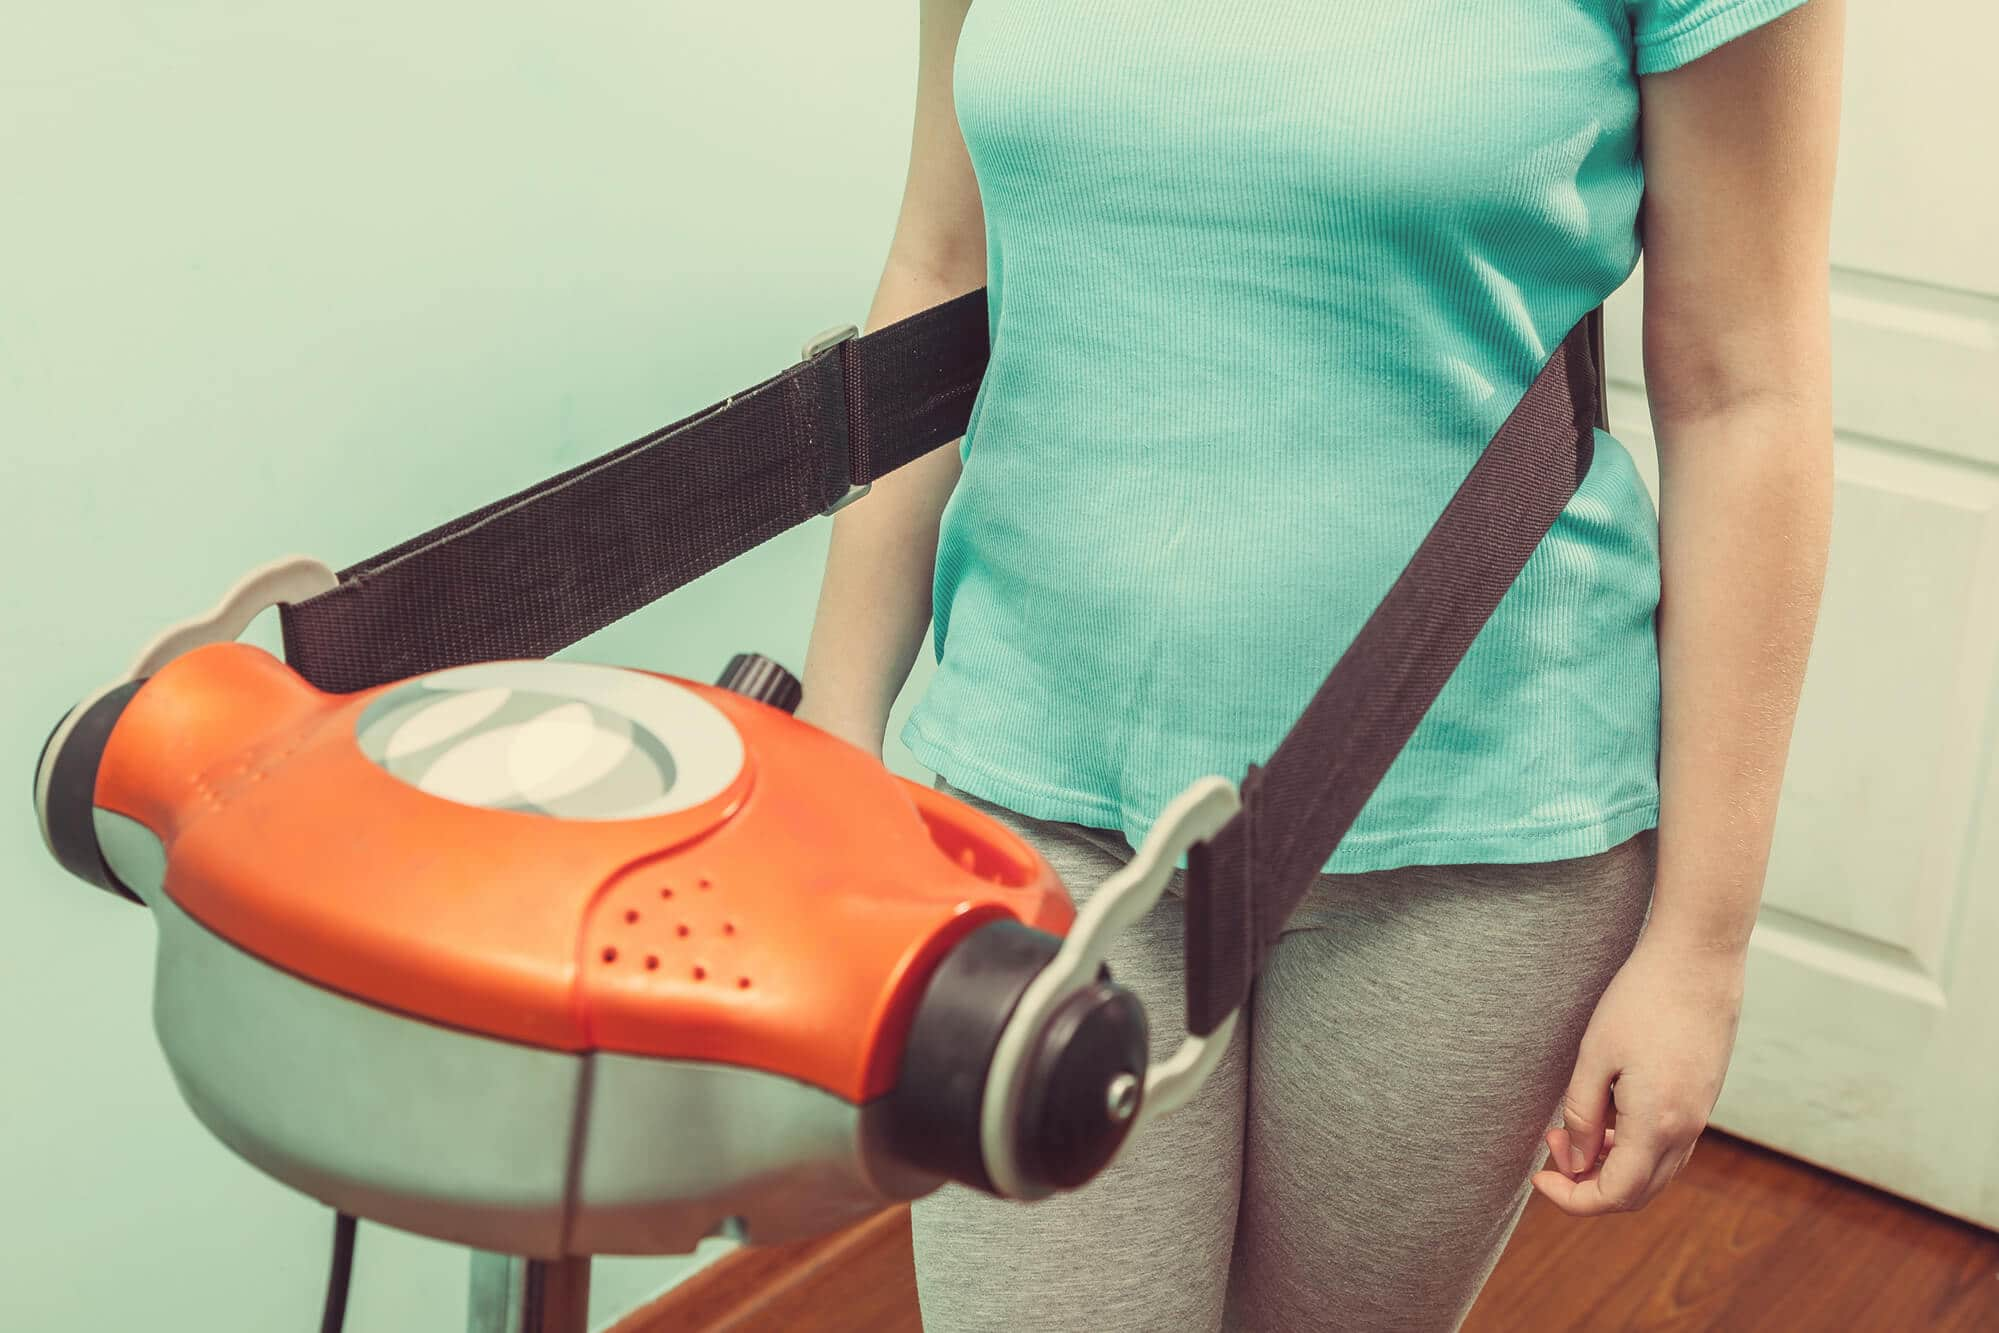 Is Buying a Vibration Machine Worth It?